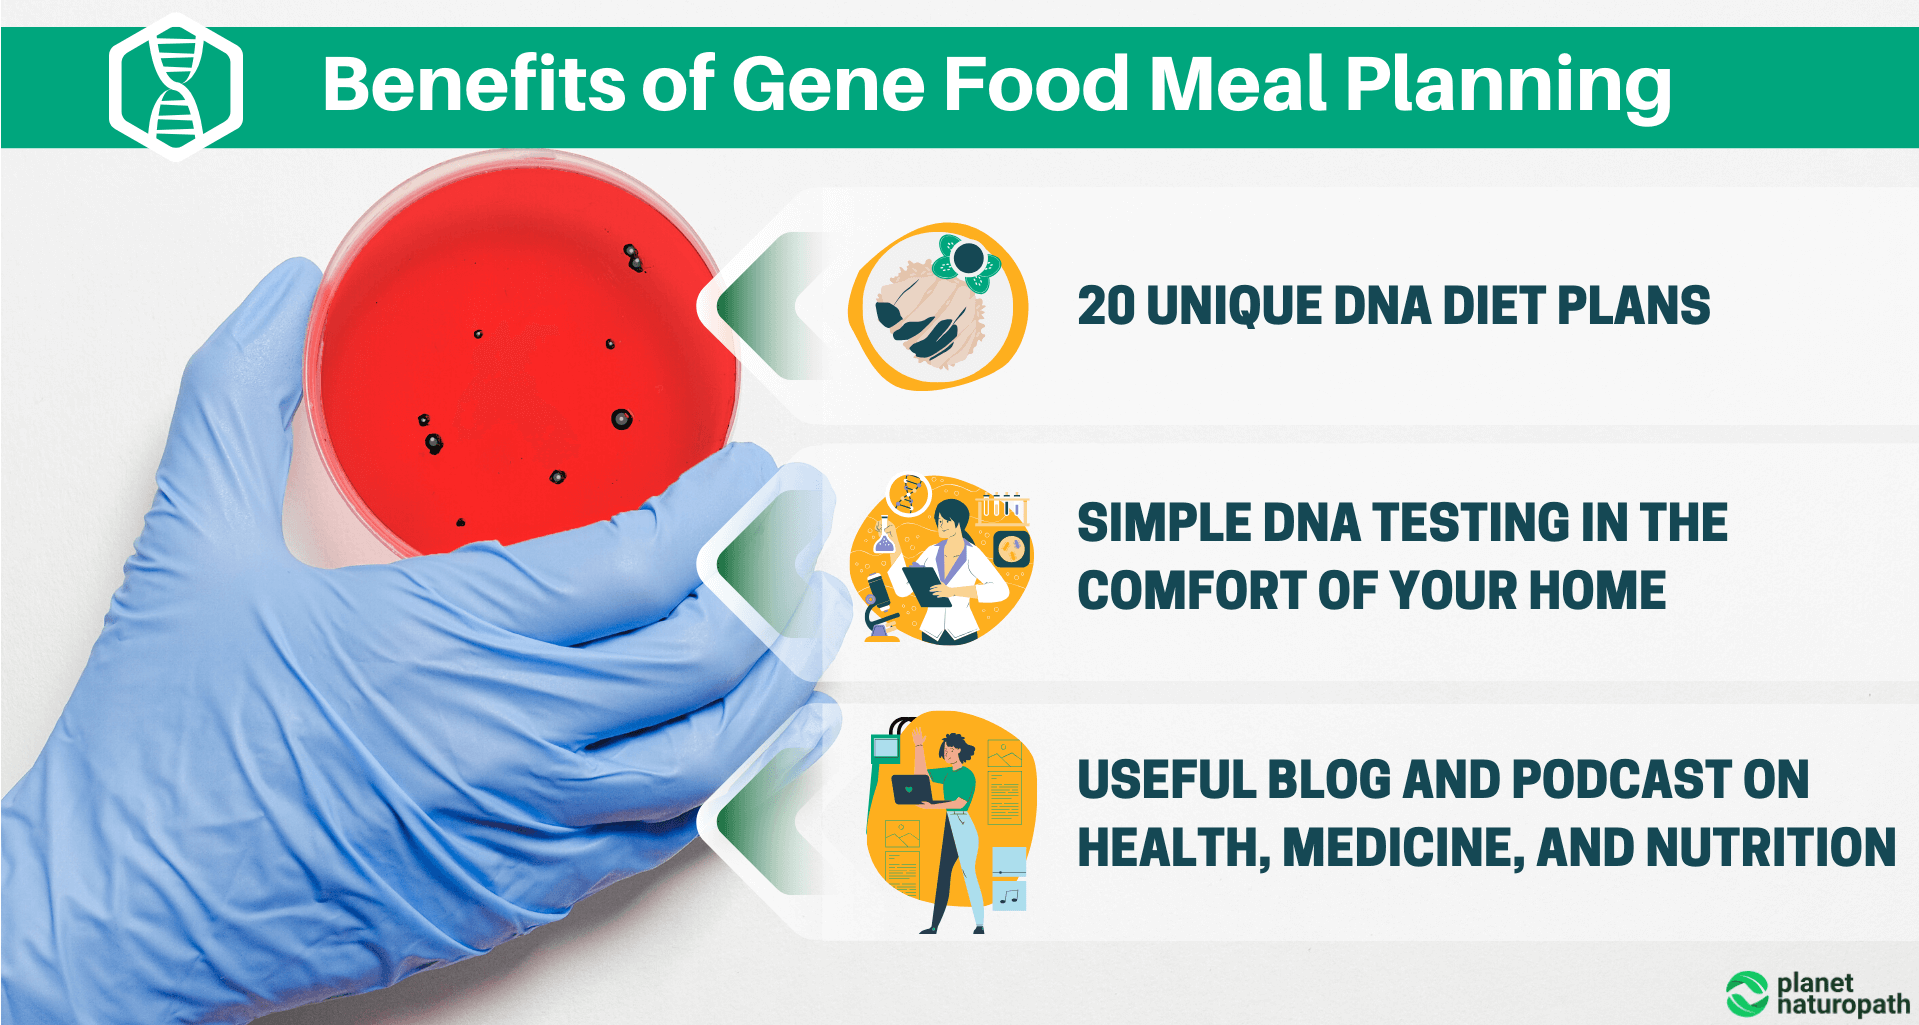 Benefits-of-Gene-Food-Meal-Planning